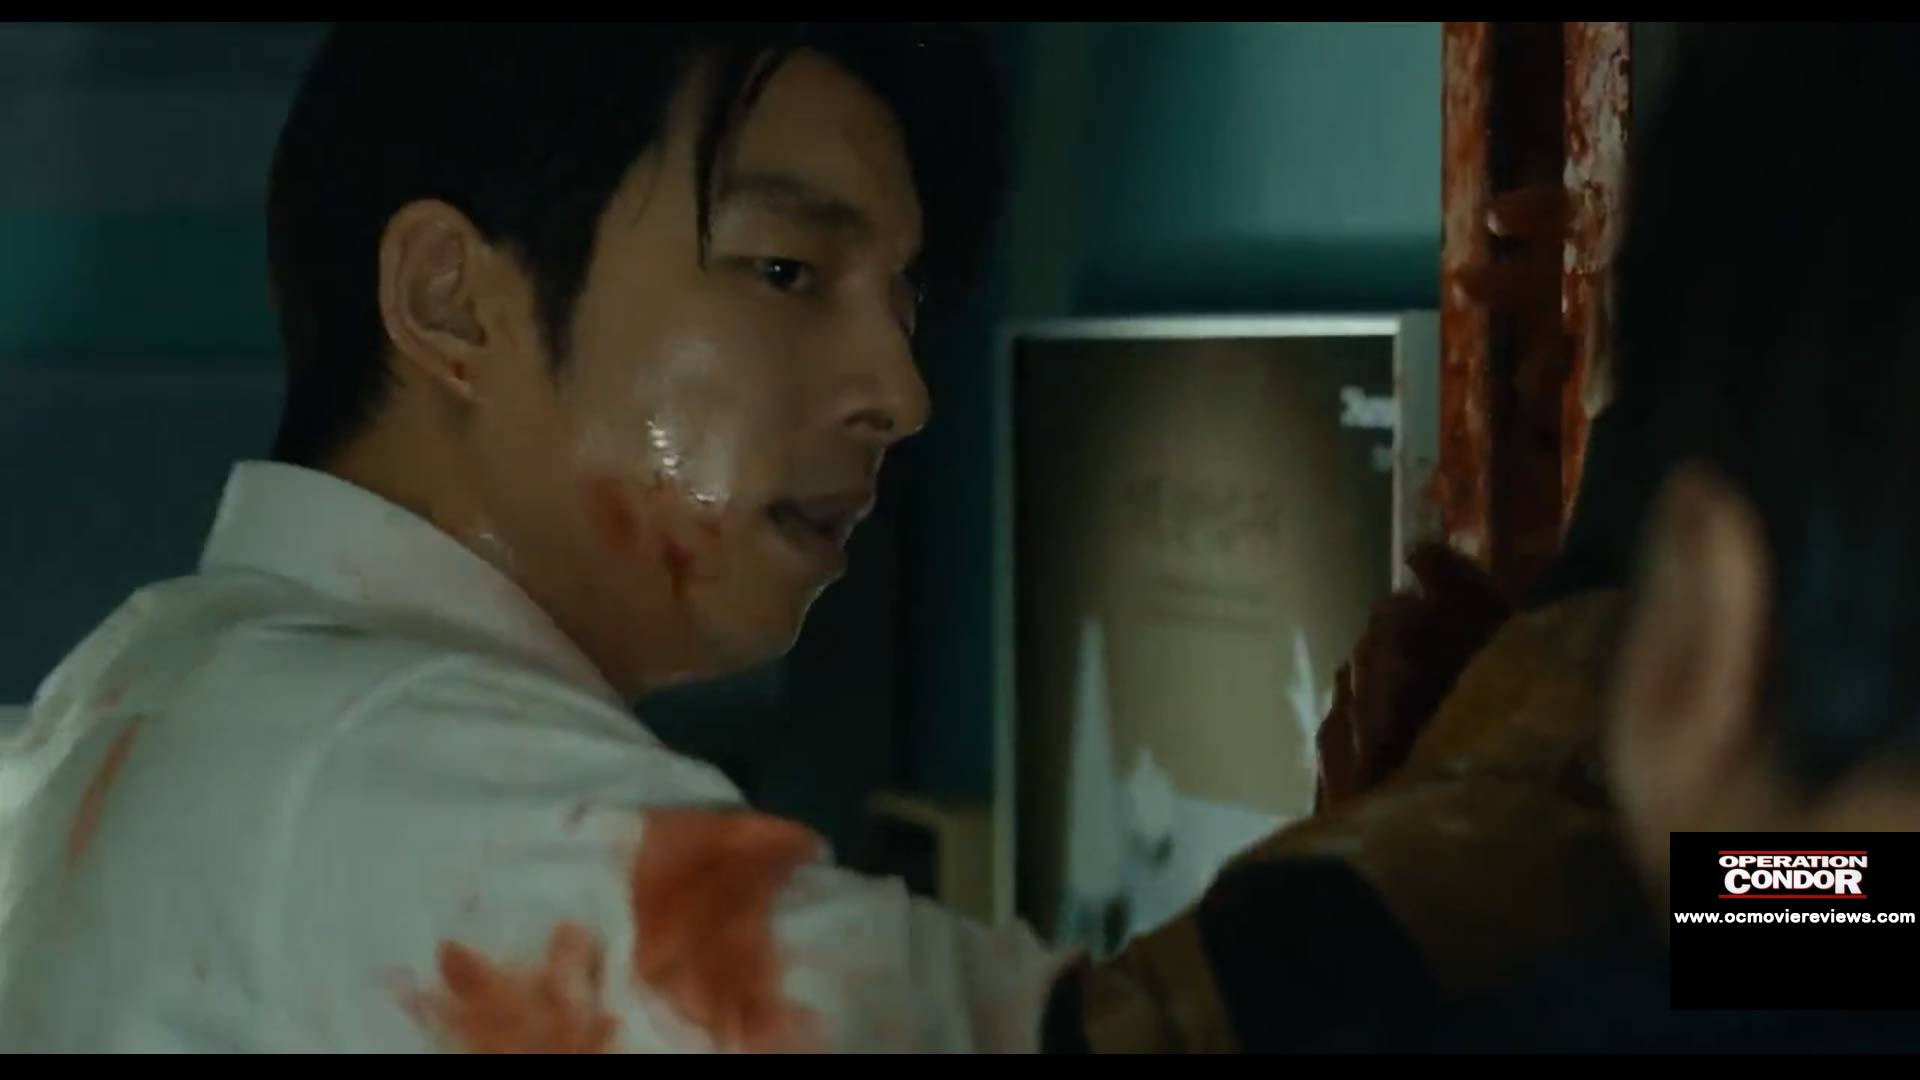 Train To Busan Review - OC Movie Reviews - Movie Reviews, Movie News, Documentary Reviews, Short Films, Short Film Reviews, Trailers, Movie Trailers, Interviews, film reviews, film news, hollywood, indie films, documentaries